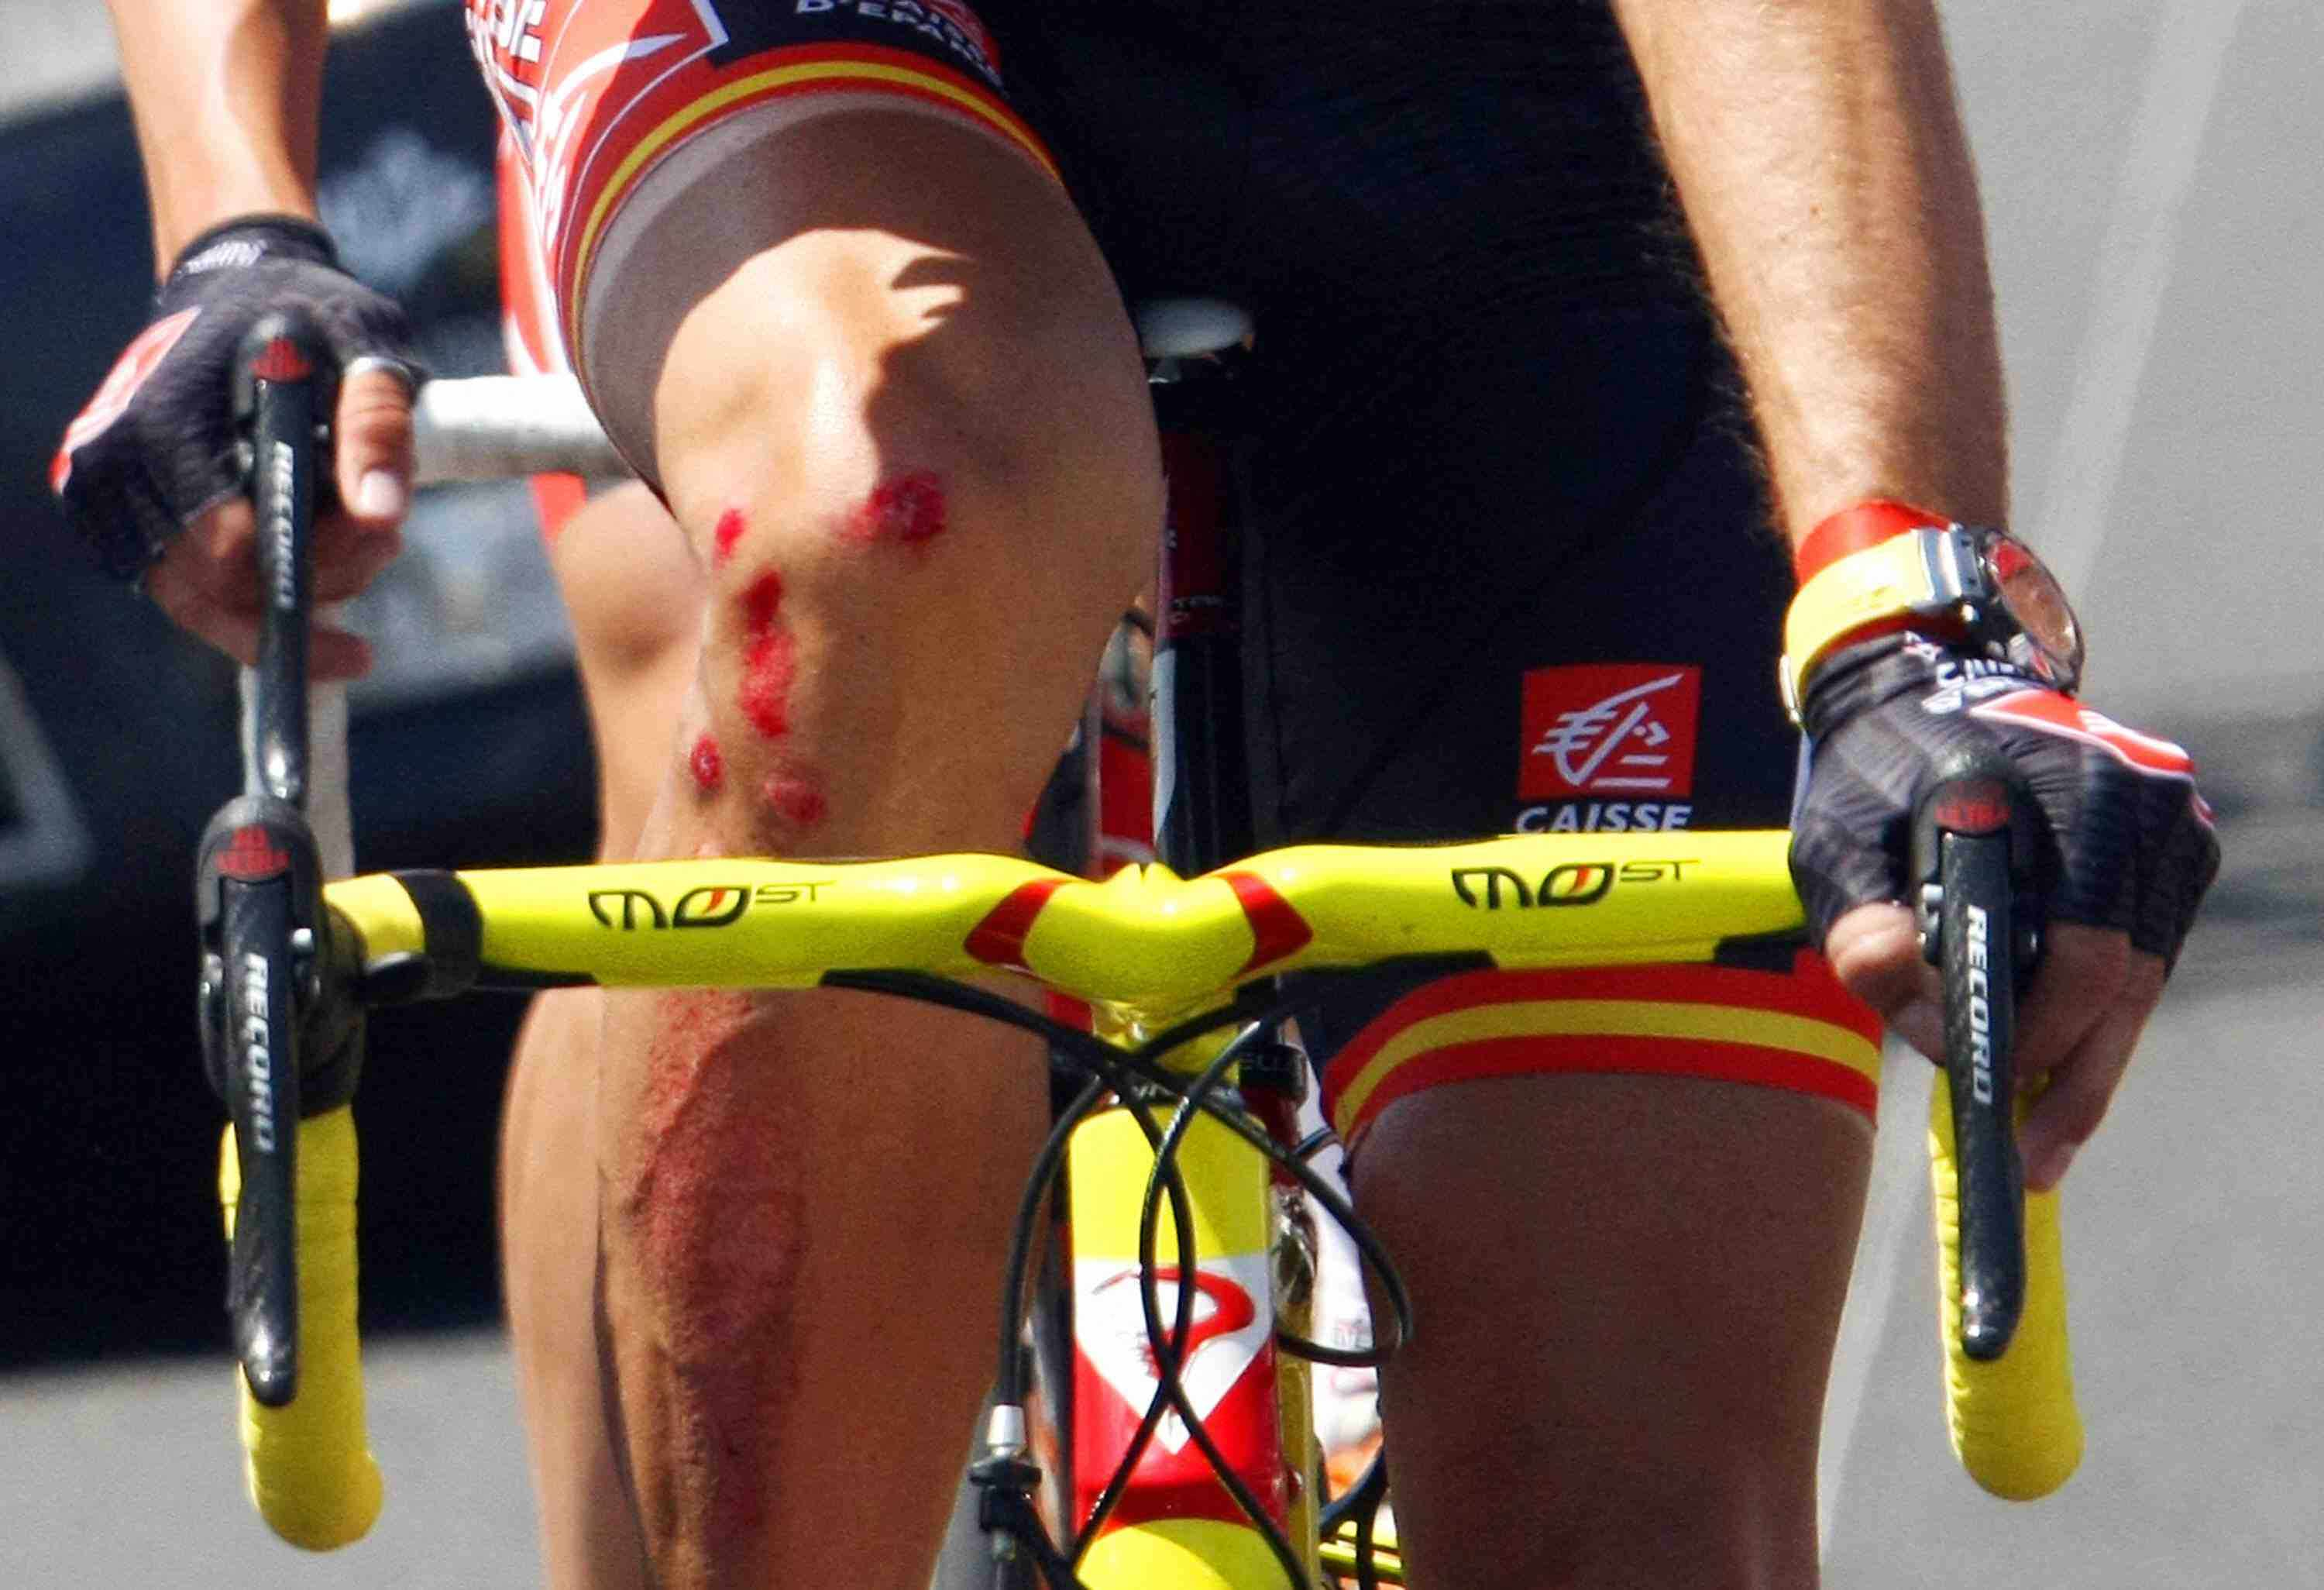 Alejandro Valverde crashed during the 5th stage of the Tour, but continued the race.